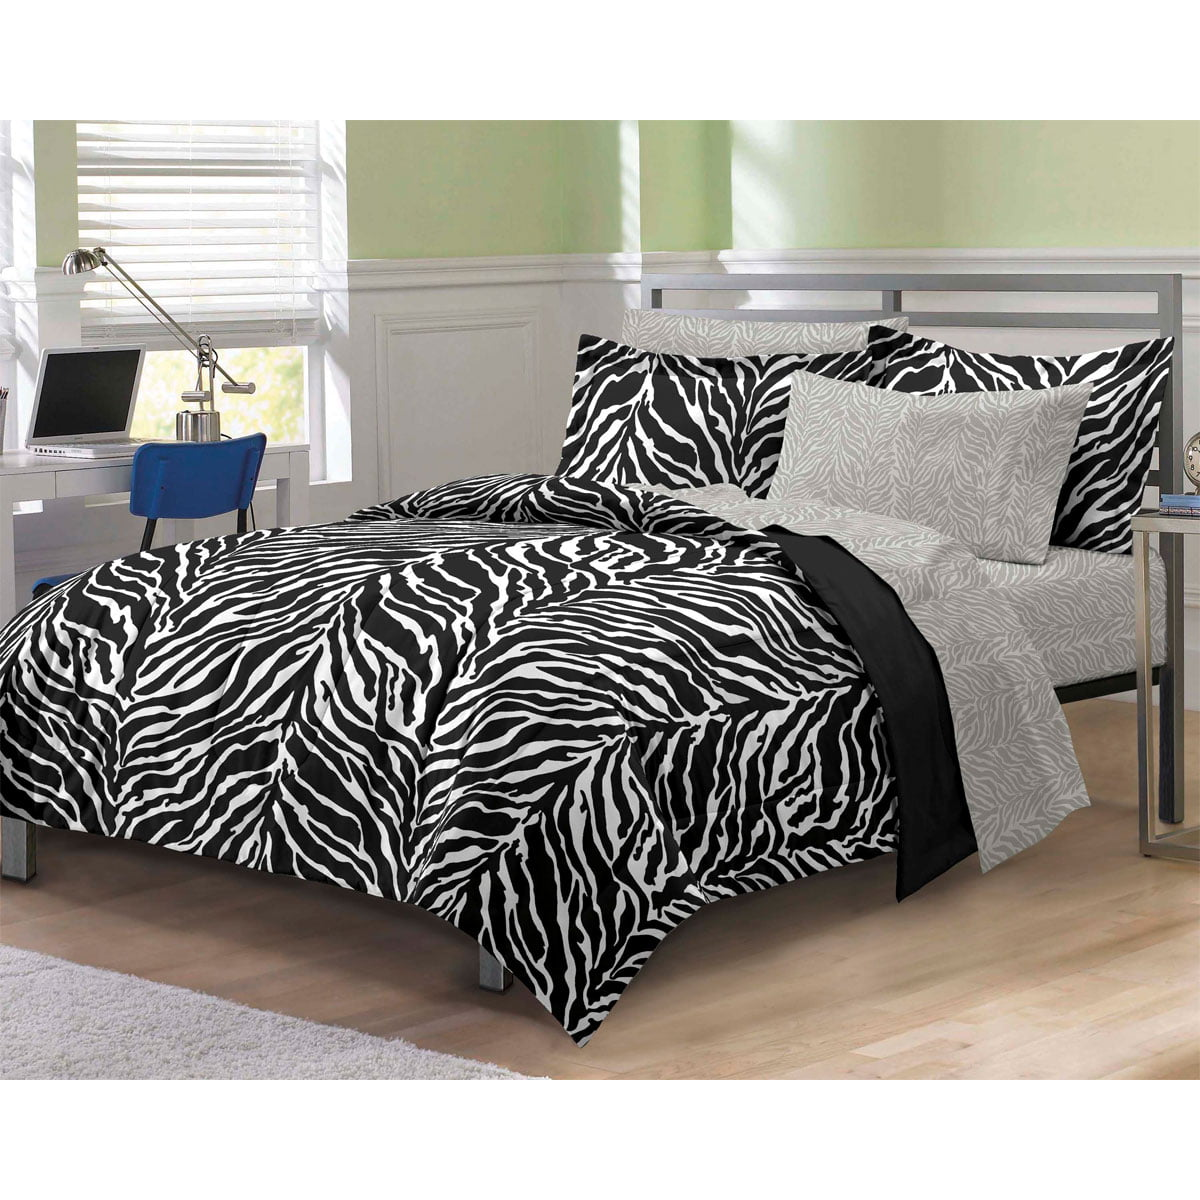 Simple My Room Zebra Complete Bed in a Bag Bedding Set Black White Walmart